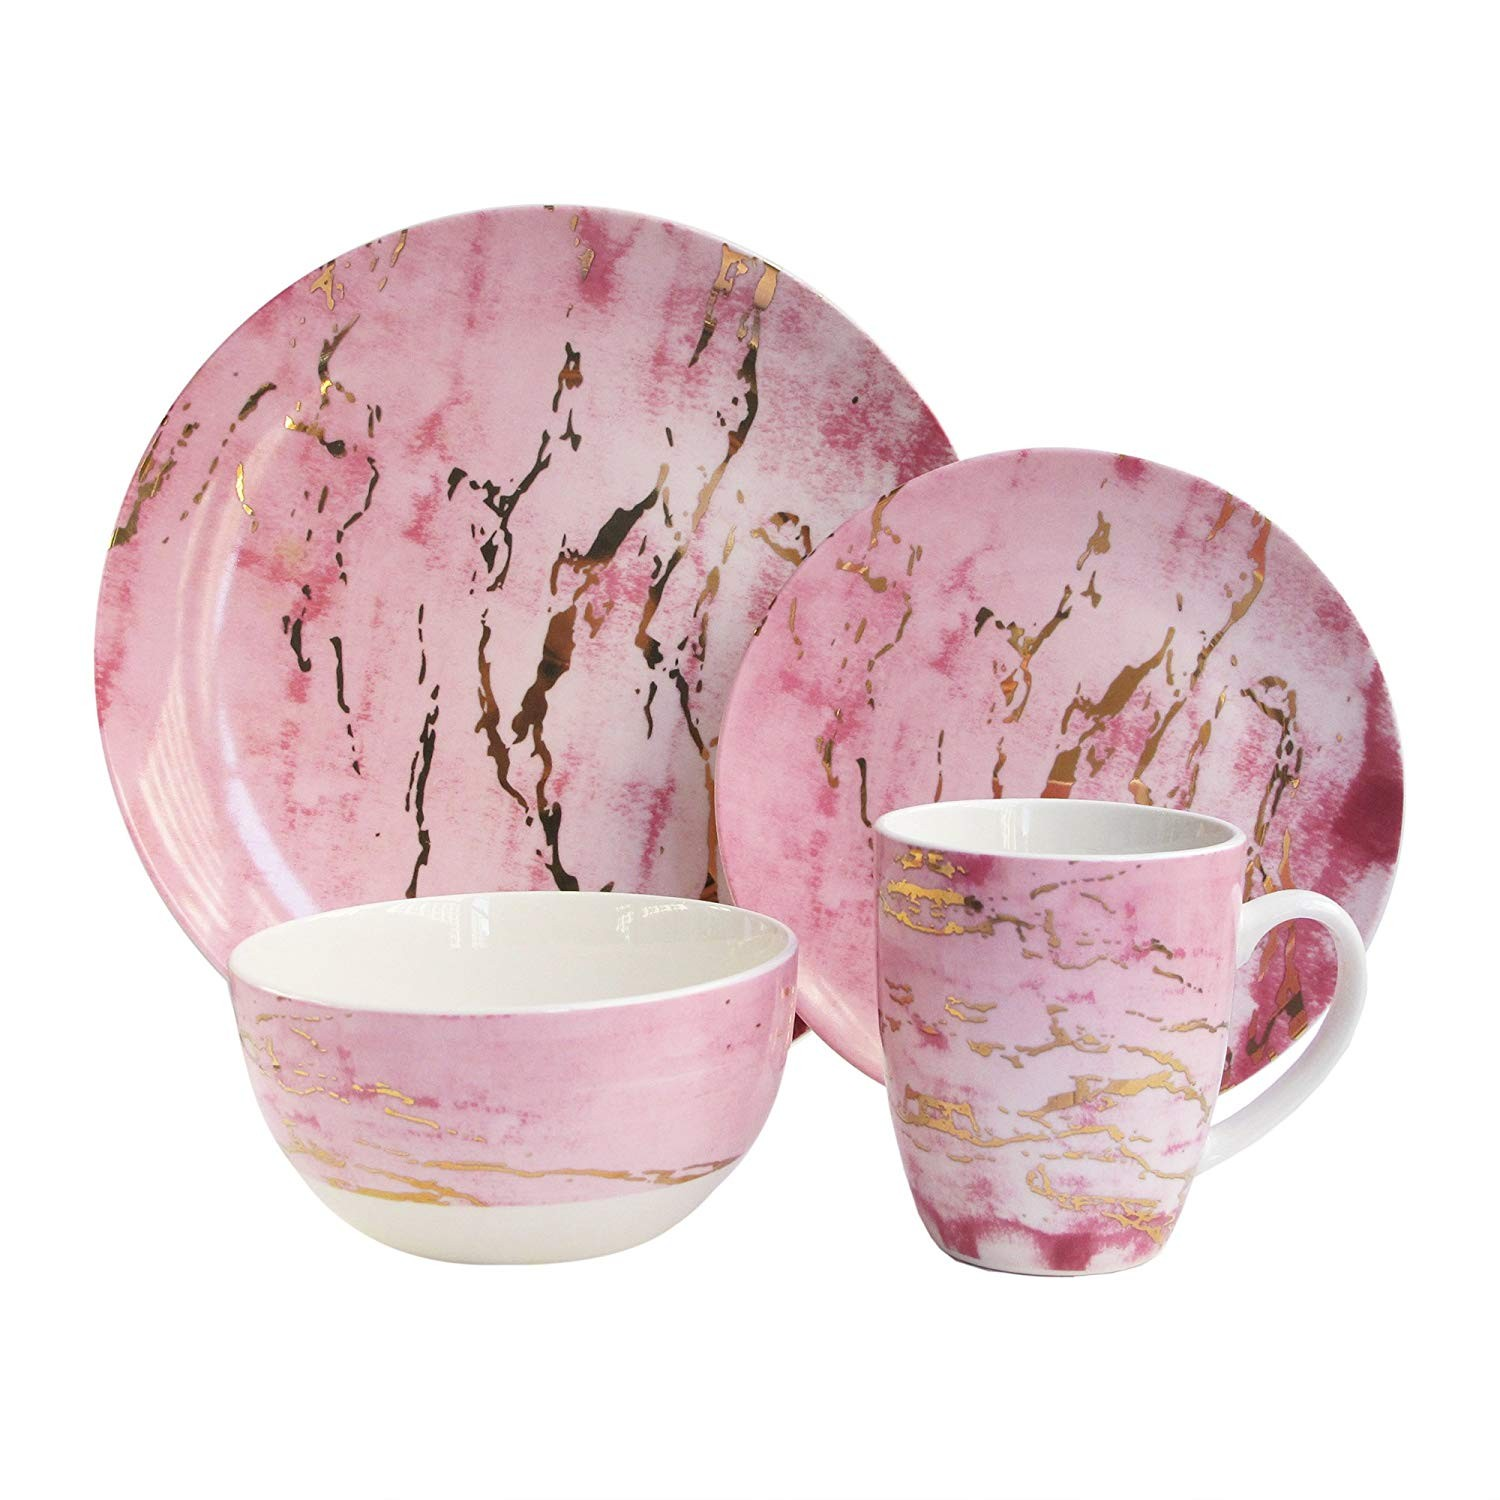 "American Atelier 7090-16-RB 16 Piece Marble Dinnerware Set, 10.5"" x 10.5"", Pink/Gold"